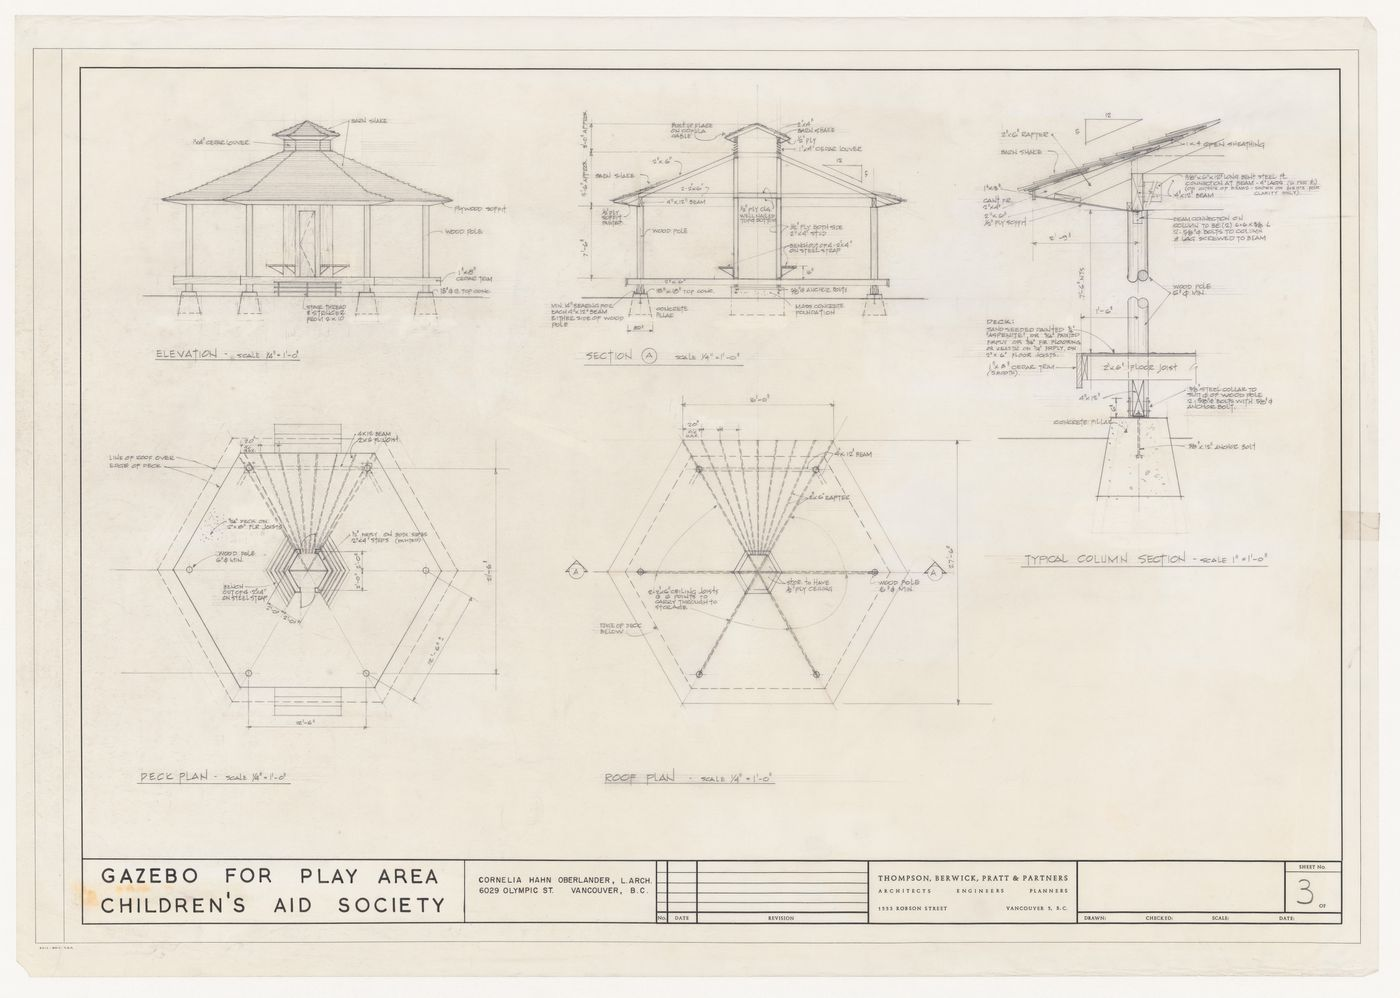 Plans, elevation, section, and detail for gazebo for play area for Eileen Colbert Home, Vancouver, British Columbia